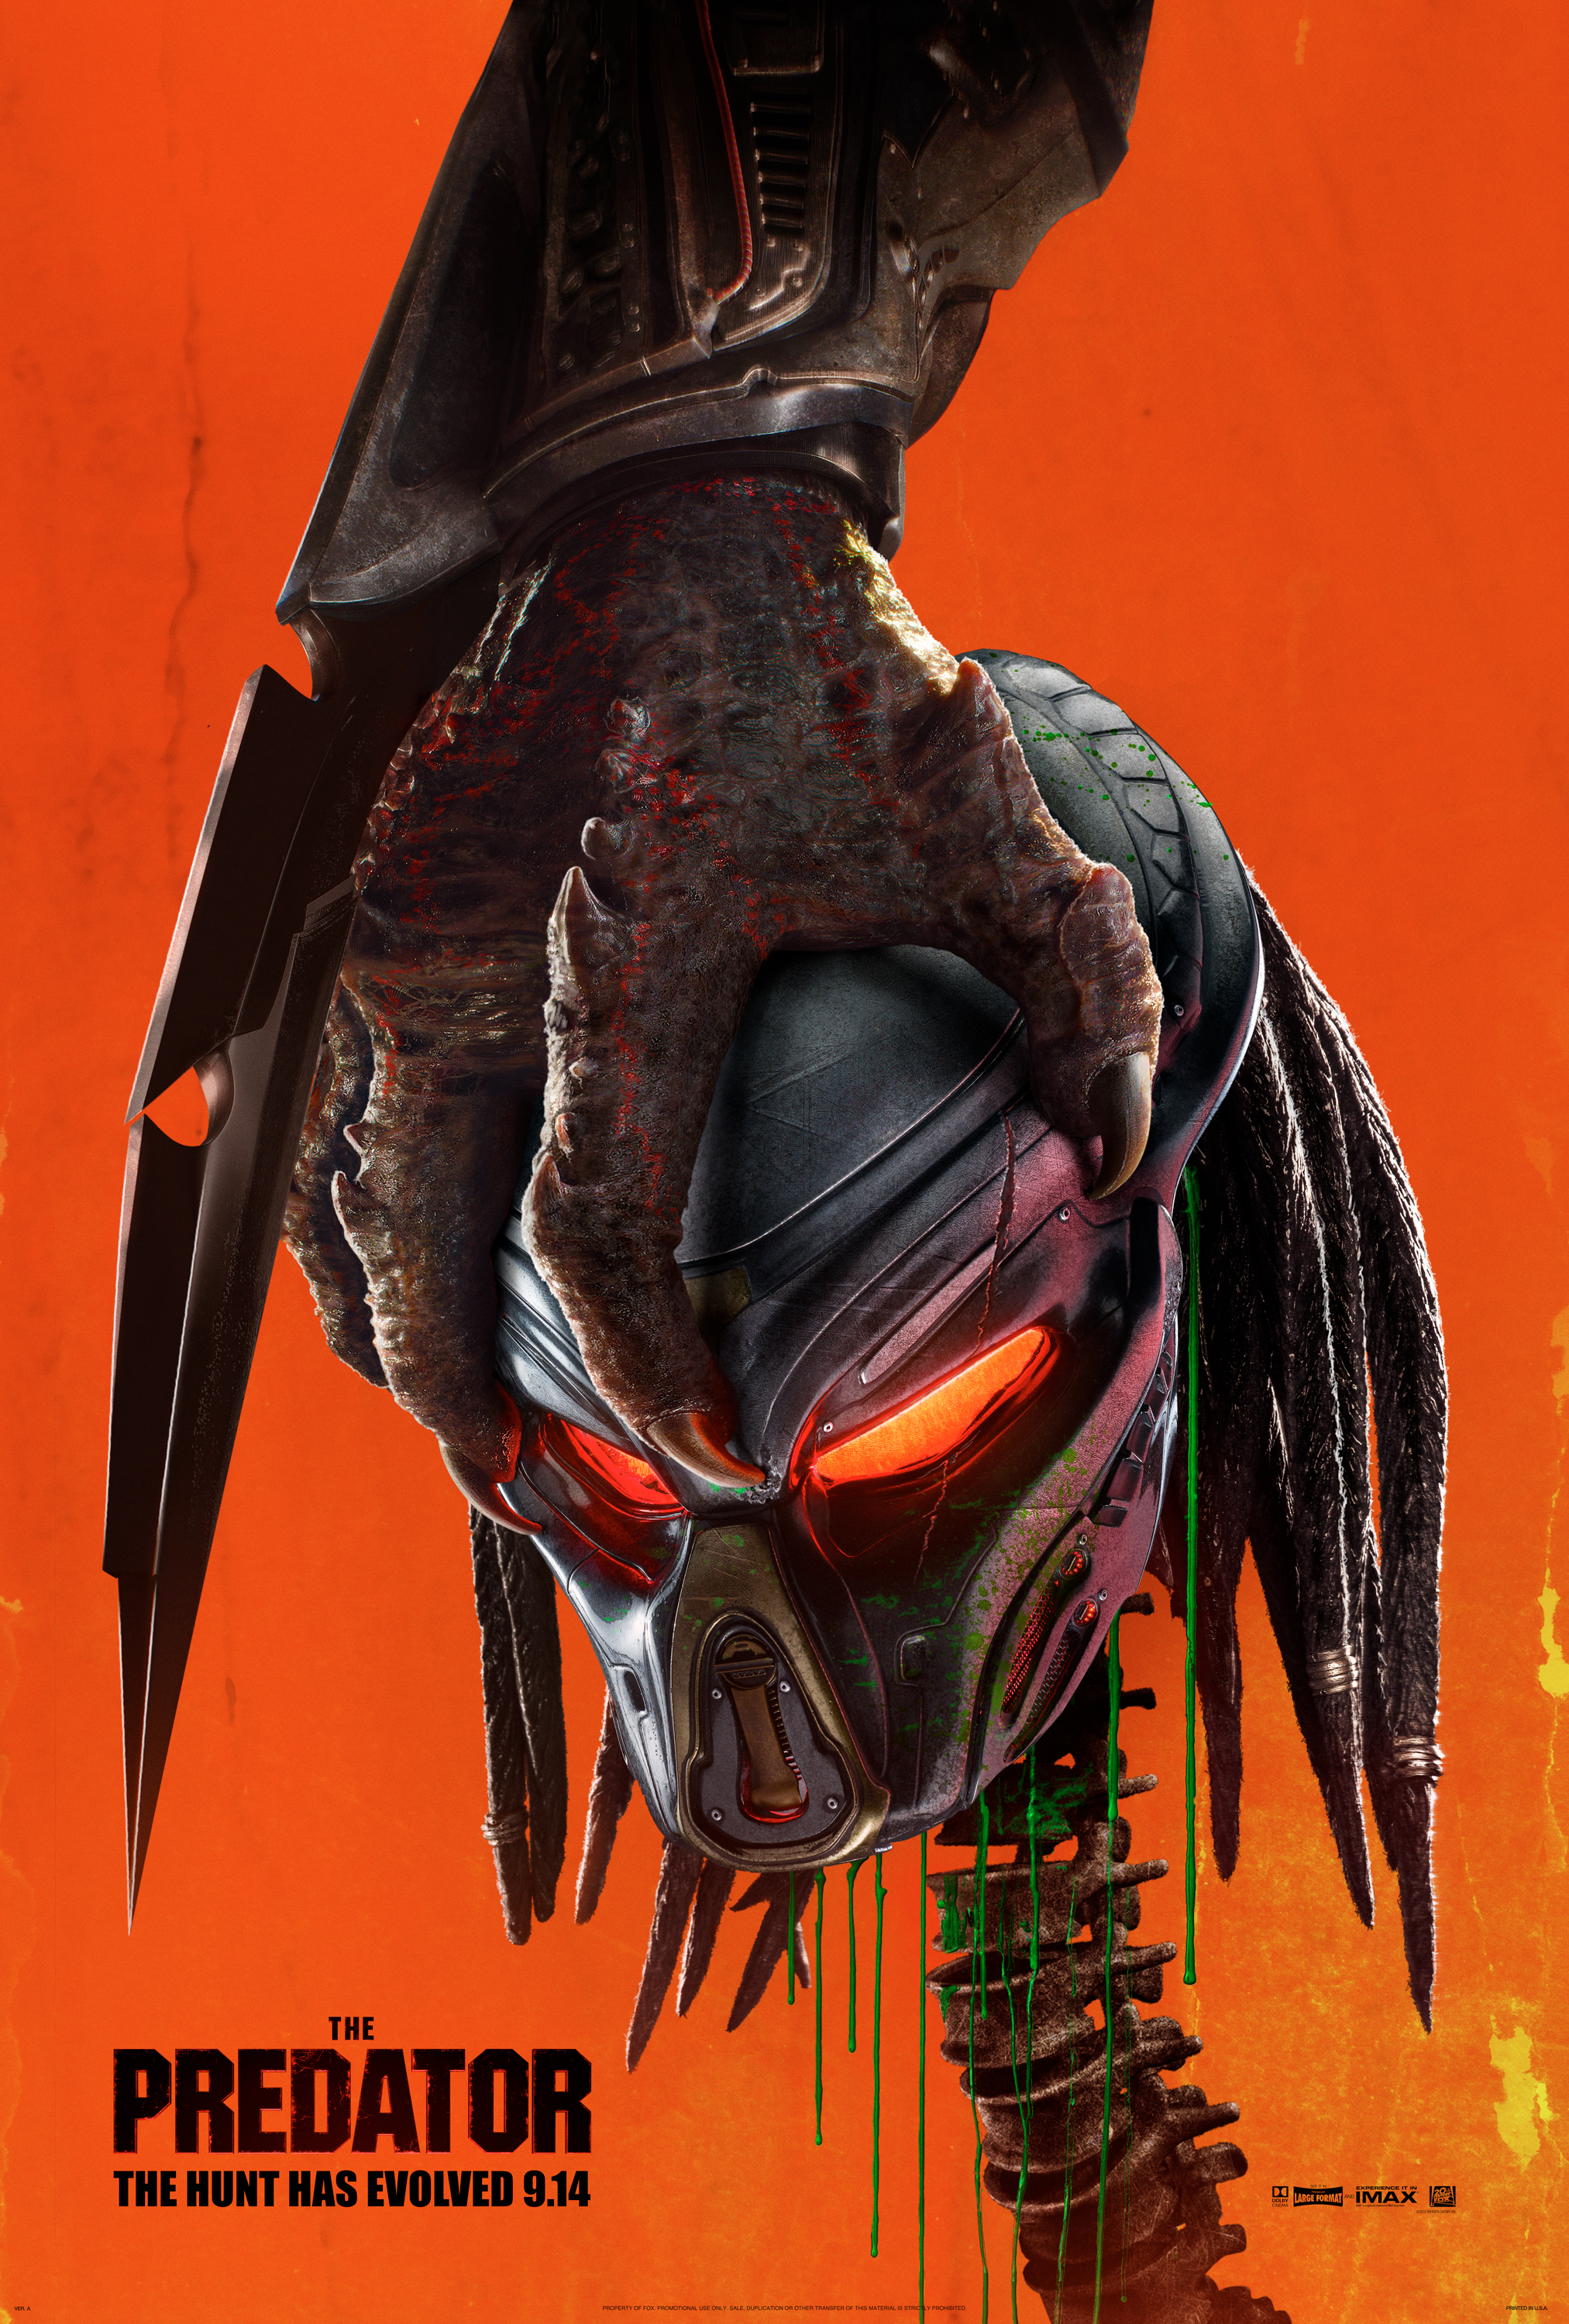 the predator poster 2 - Trailer final de The Predator